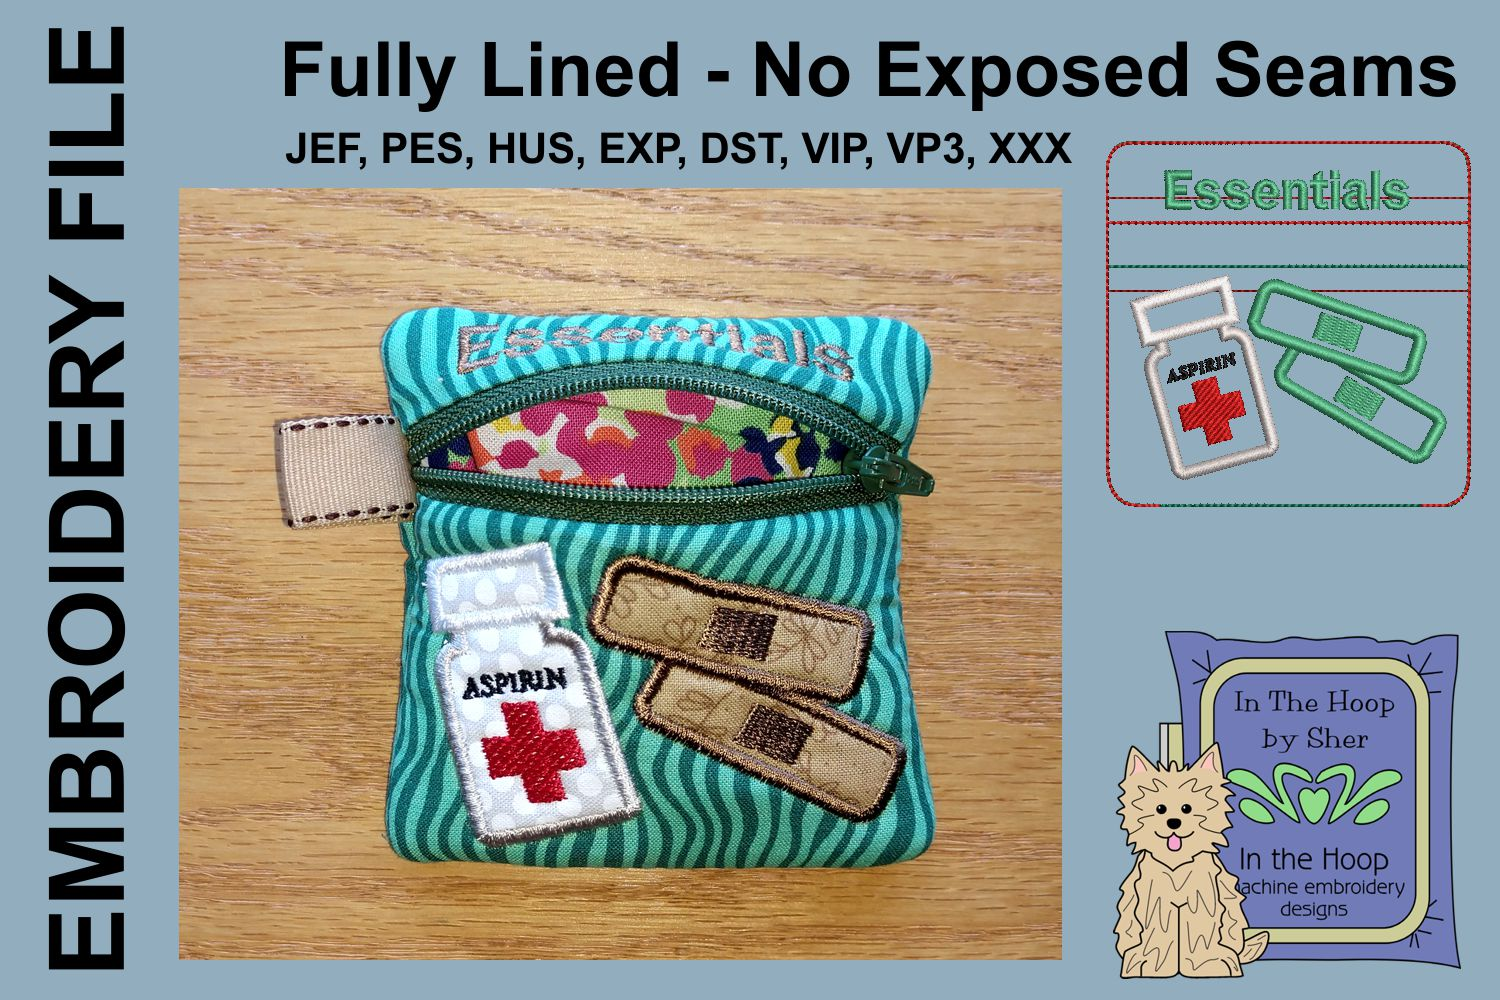 First Aid Mini Zipper Bag / Fully Lined, 4X4 HOOP example image 2